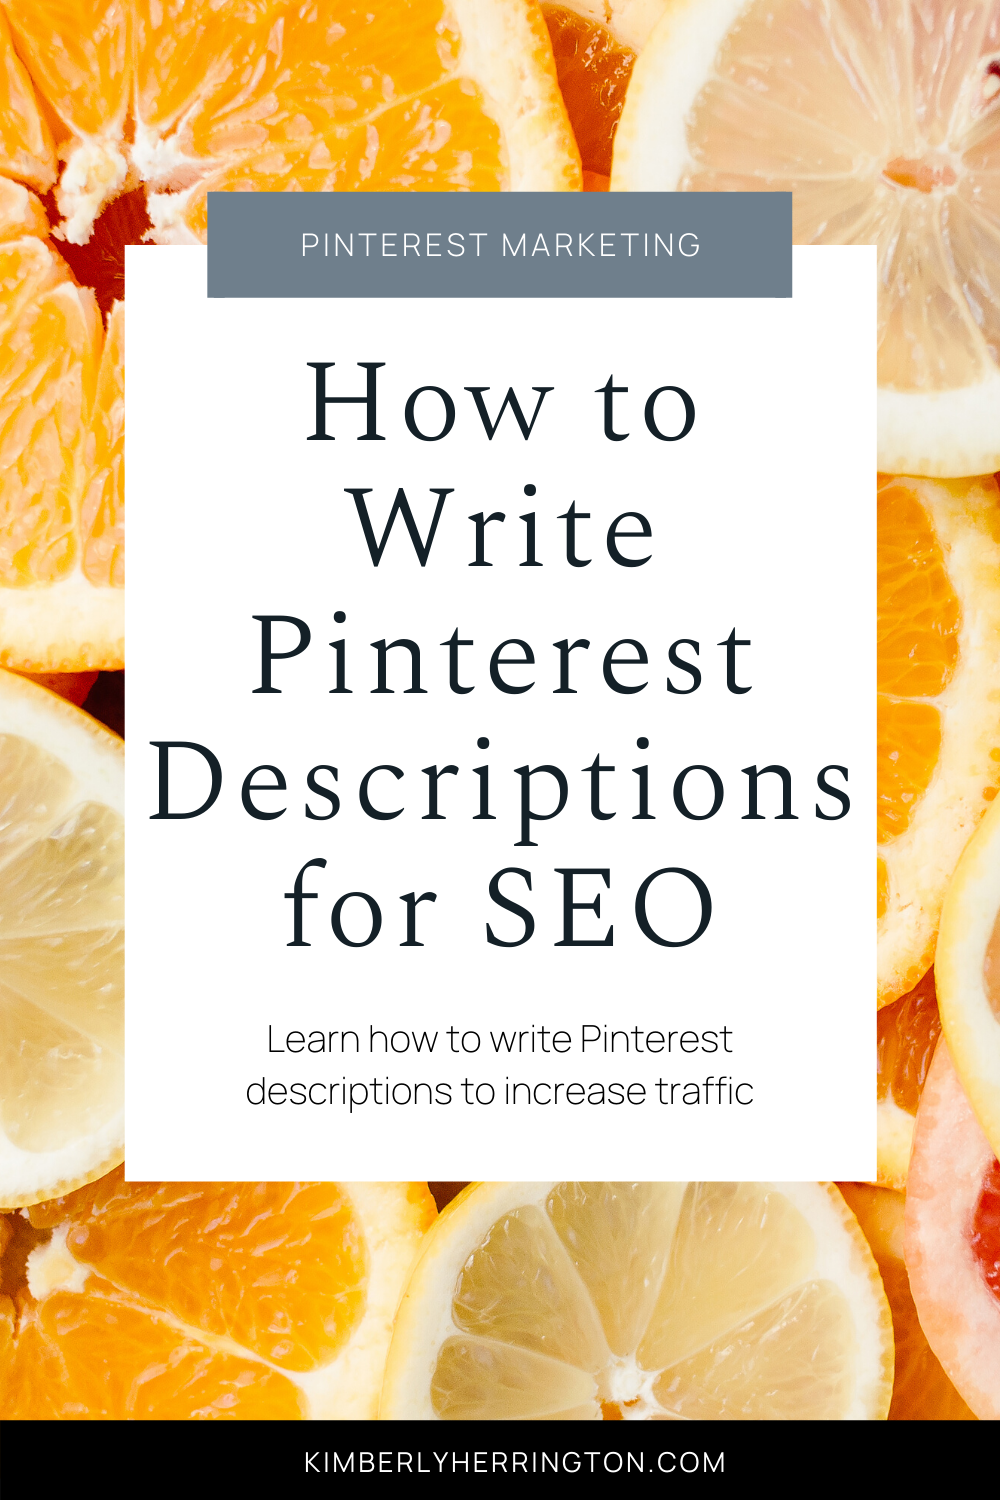 SEO and Pinterest Description Secrets